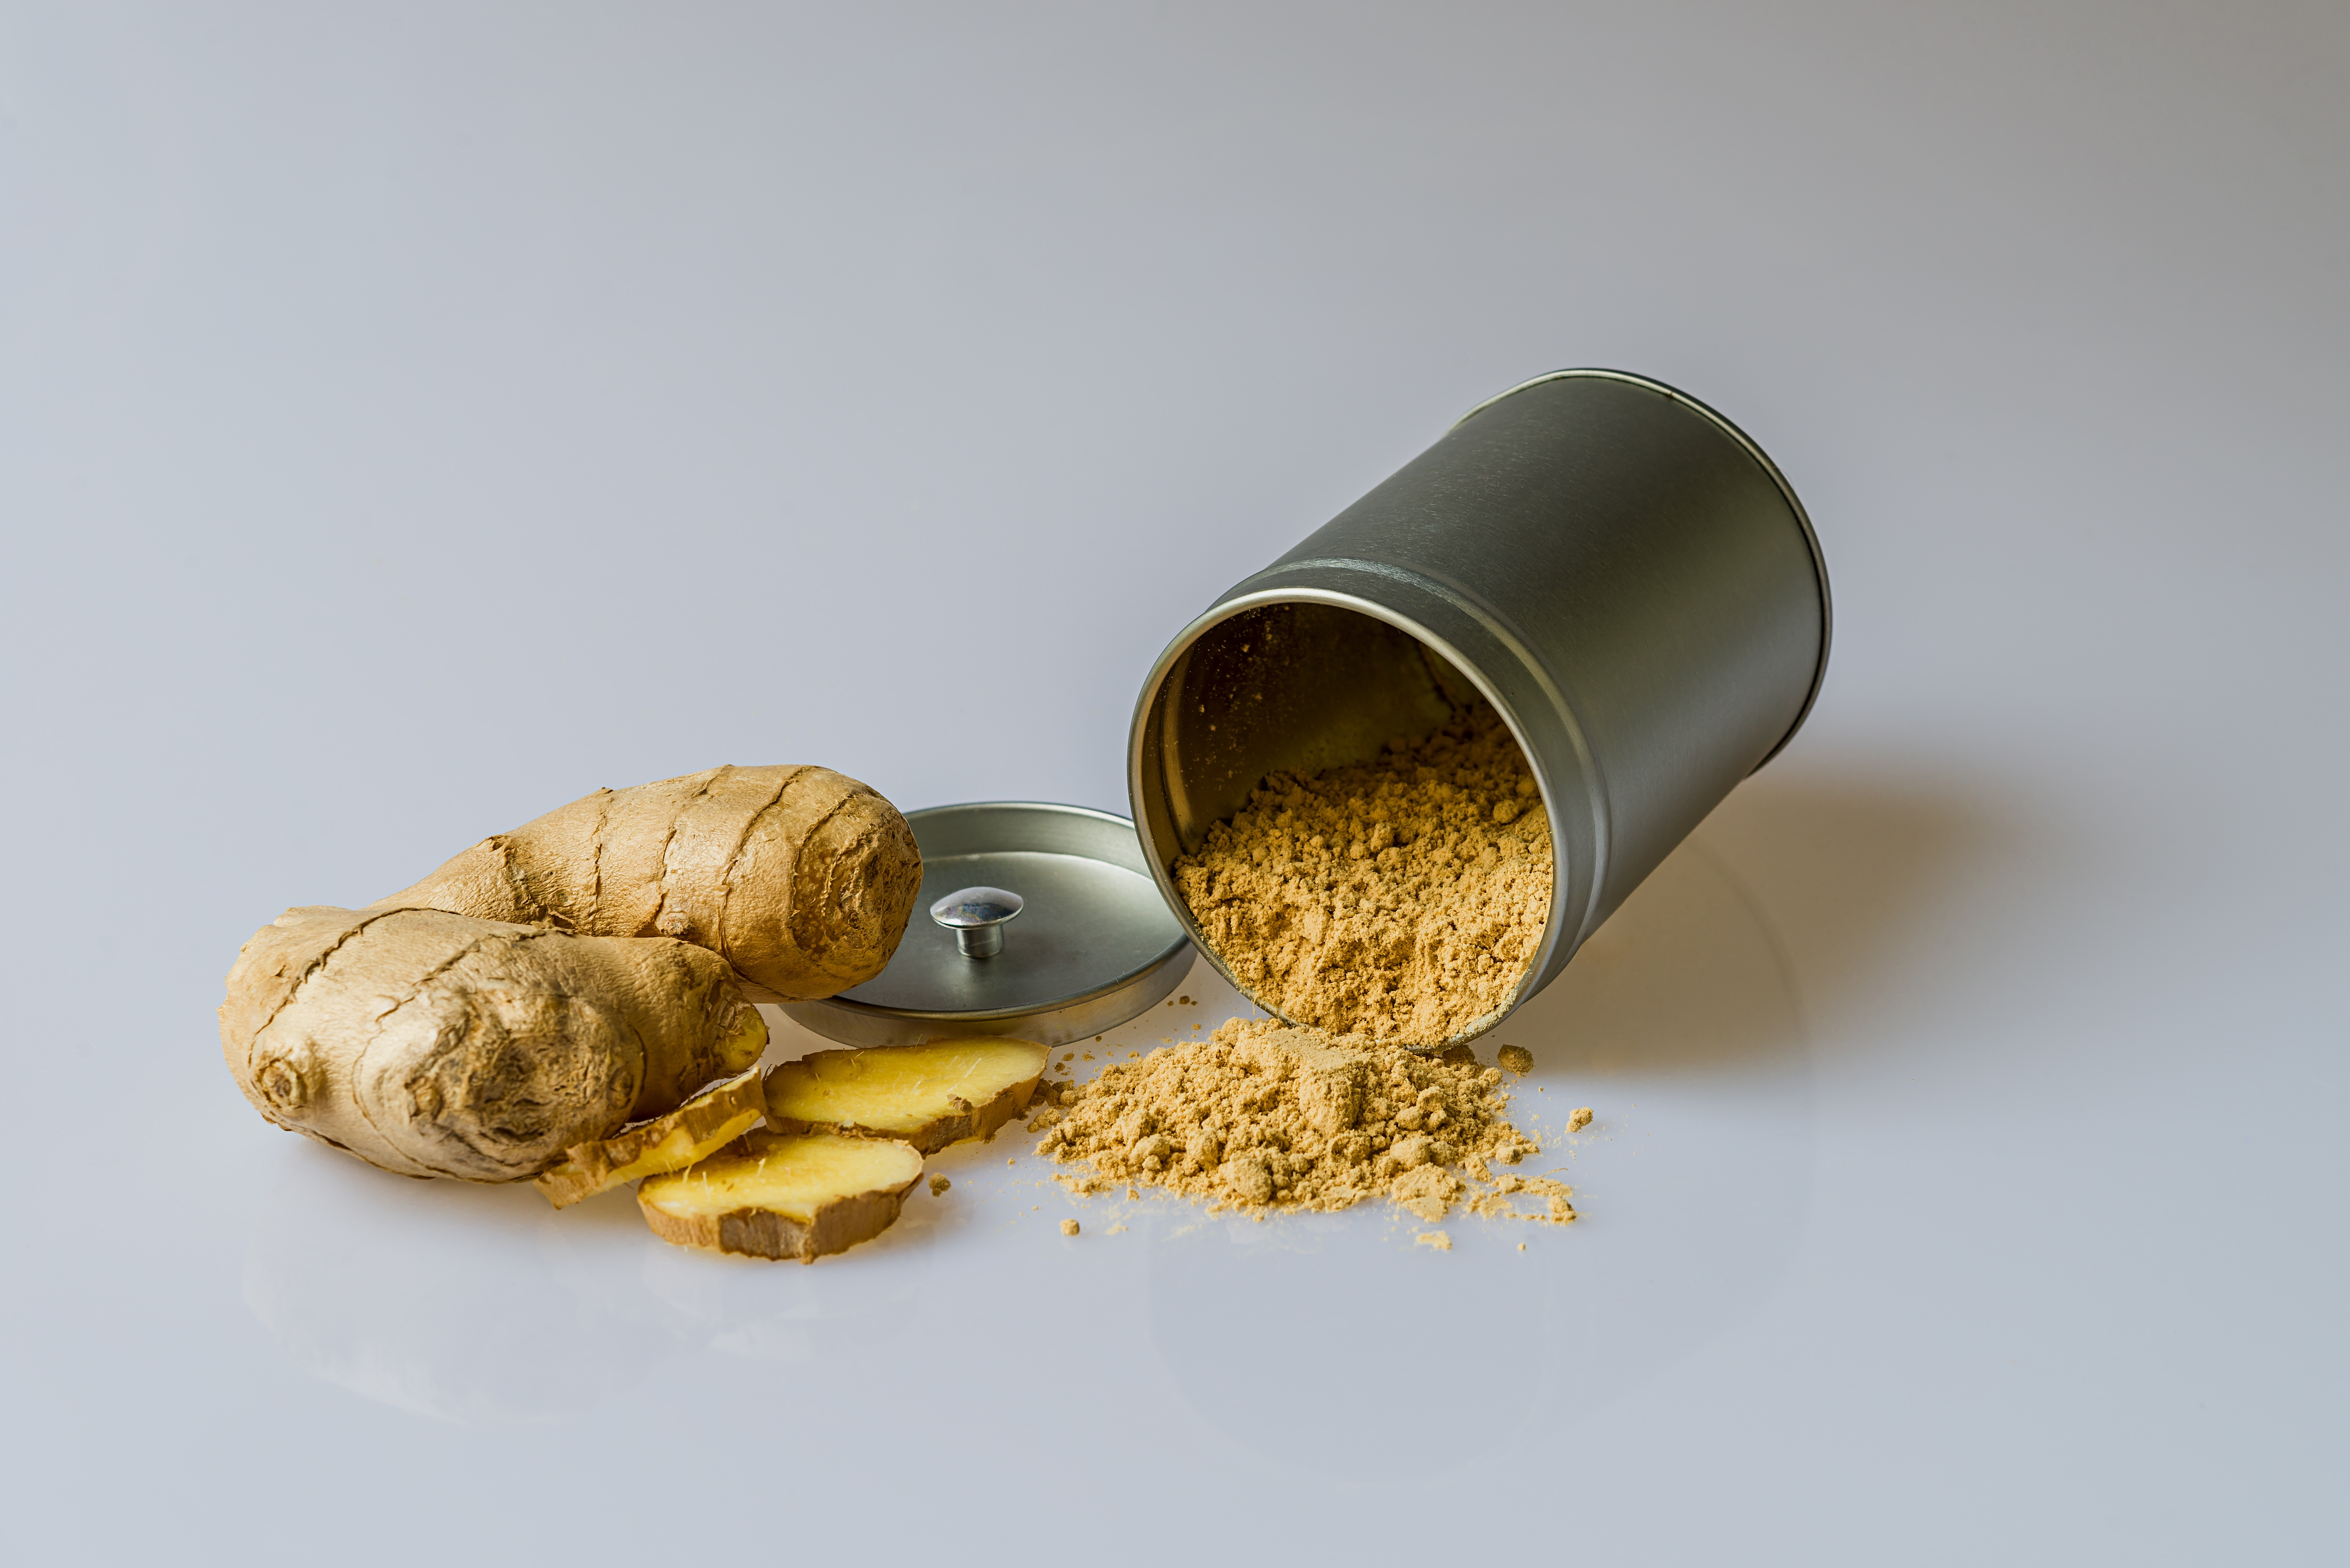 is ginger a natural pain reliever?